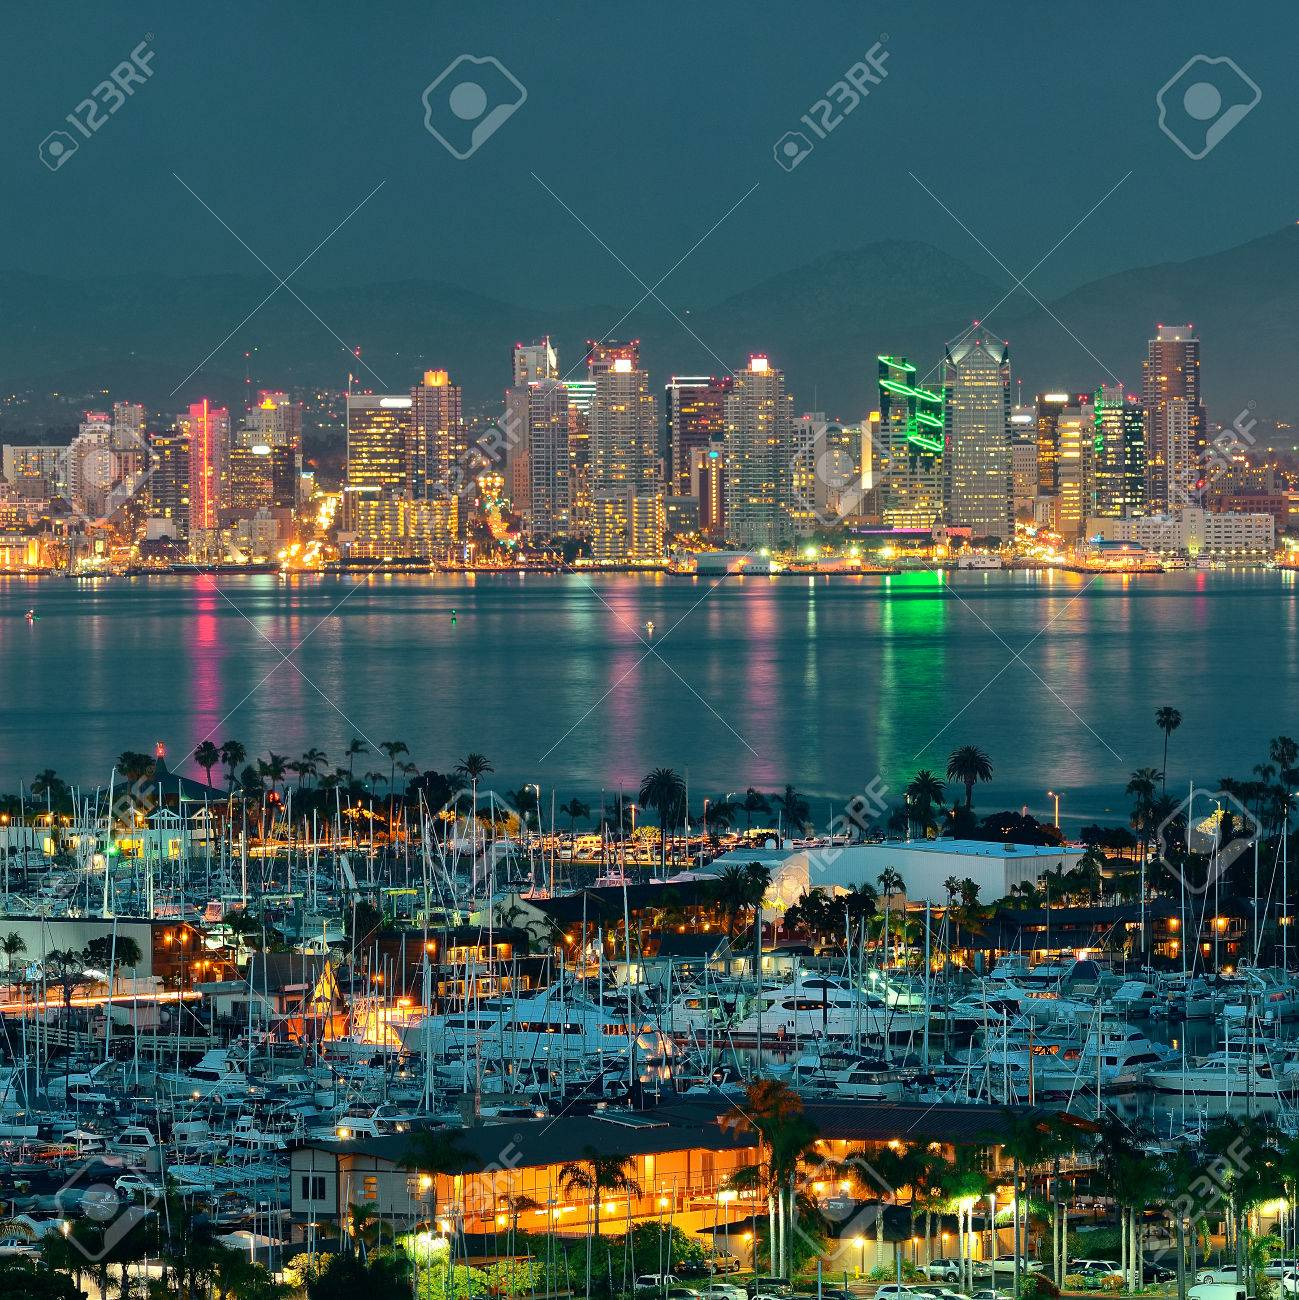 San Diego Downtown Skyline At Night With Boat In Harbor Stock Photo Picture And Royalty Free Image Image 31957138